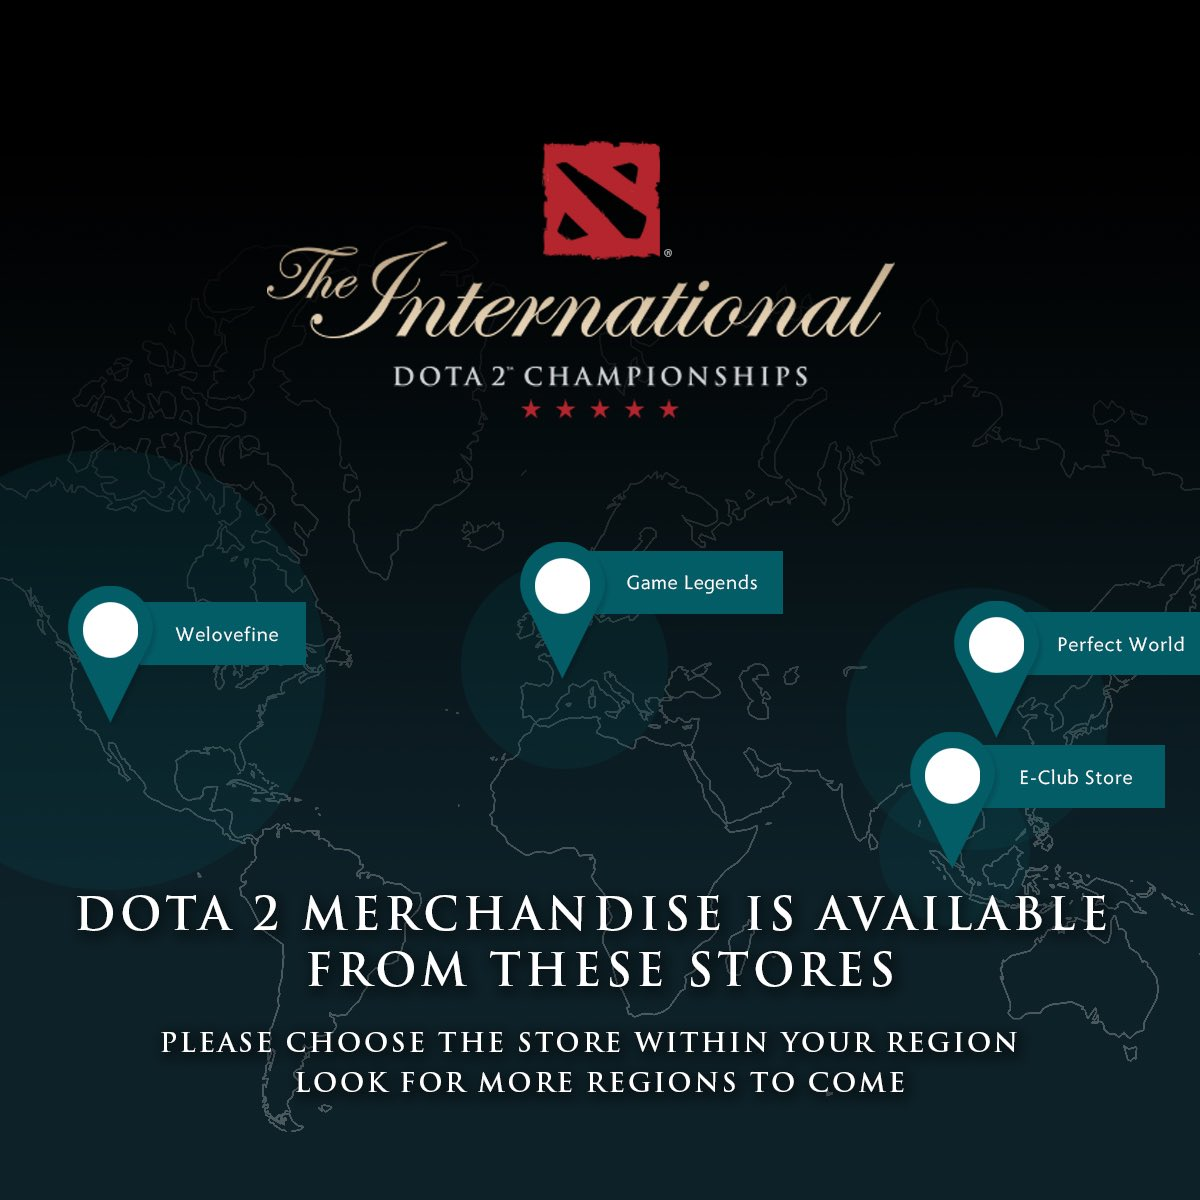 dota 2 on twitter dota 2 merchandise is now available in the